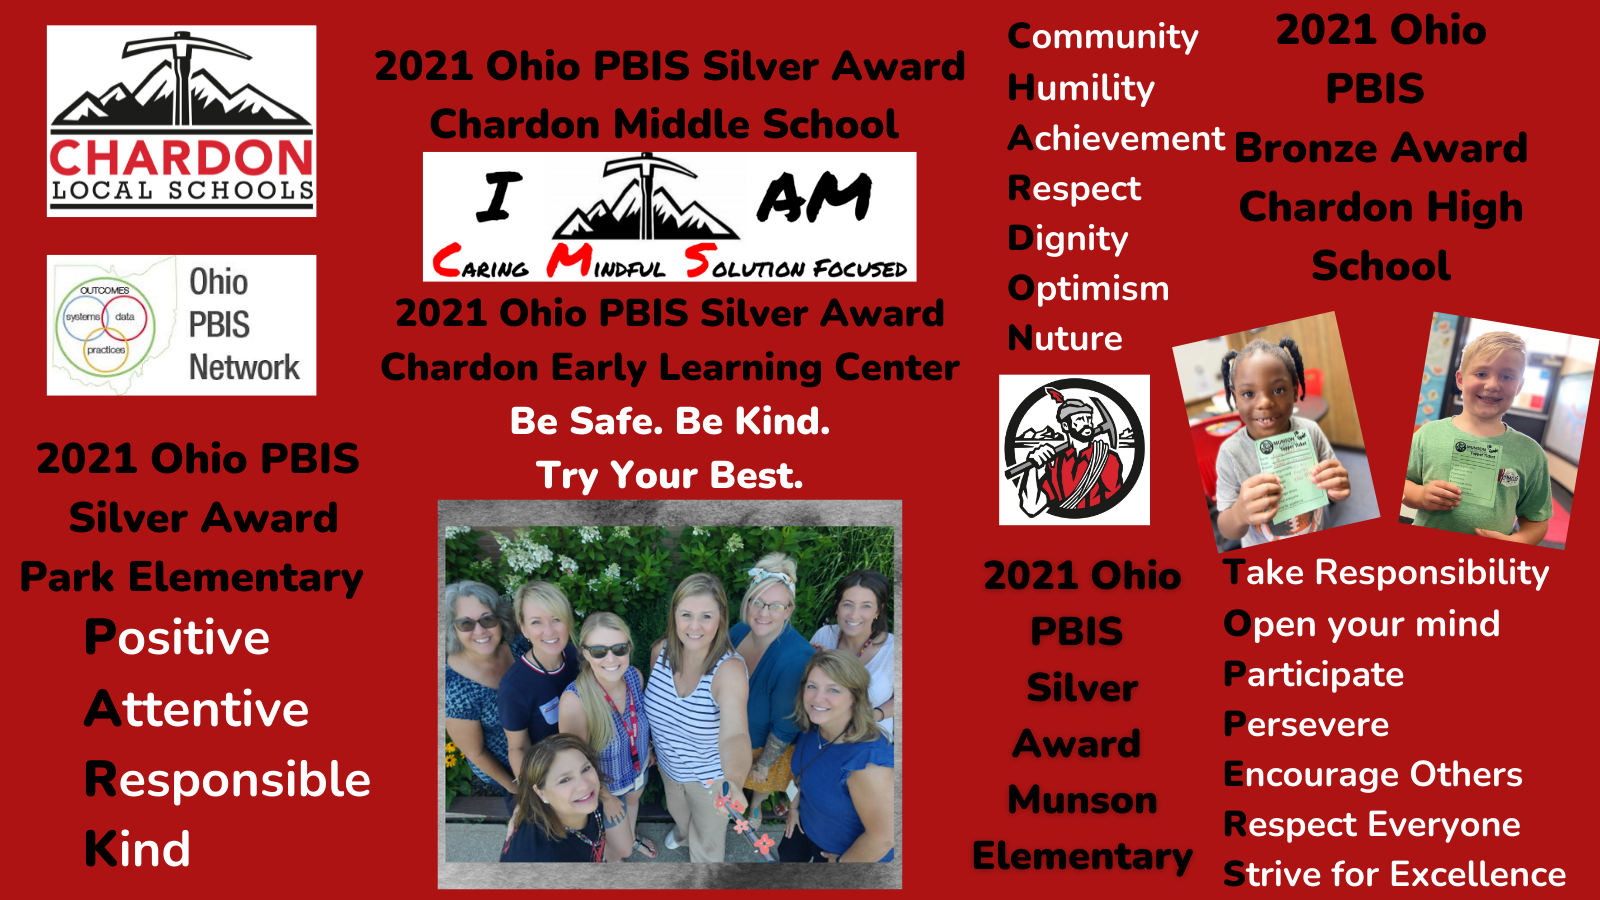 collage graphic:  Chardon Local Schools mountain axe logo; Ohio PBIS Network logo; 2021 Ohio PBIS Silver Award - Park Elementary - acrostic poem:  Positive, Attentive, Responsible, Kind; 2021 Ohio PBIS Silver Award Chardon Middle School:  I am Caring, Mindful and Solution Focused; 2021 Ohio PBIS Silver Award Chardon Early Learning Center:  Be Safe. Be Kind. Try Your Best.; 2021 Ohio PBIS Bronze Award - Chardon High School - acrostic poem:  Community, Humility, Achievement, Respect, Dignity, Optimism, Nuture; Hilltopper logo with mountain axe; 2021 Ohio PBIS Silver Award Munson Elementary - acrostic poem:  Take responsibility, Open your mind, Participate, Persevere, Encourage Ohters, Respect Everyone, Strive for Excellence; 2 photos of Munson Elementary students holding their Topper Ticket awards; group photo of various Chardin Early Learning Center staff - PBIS team